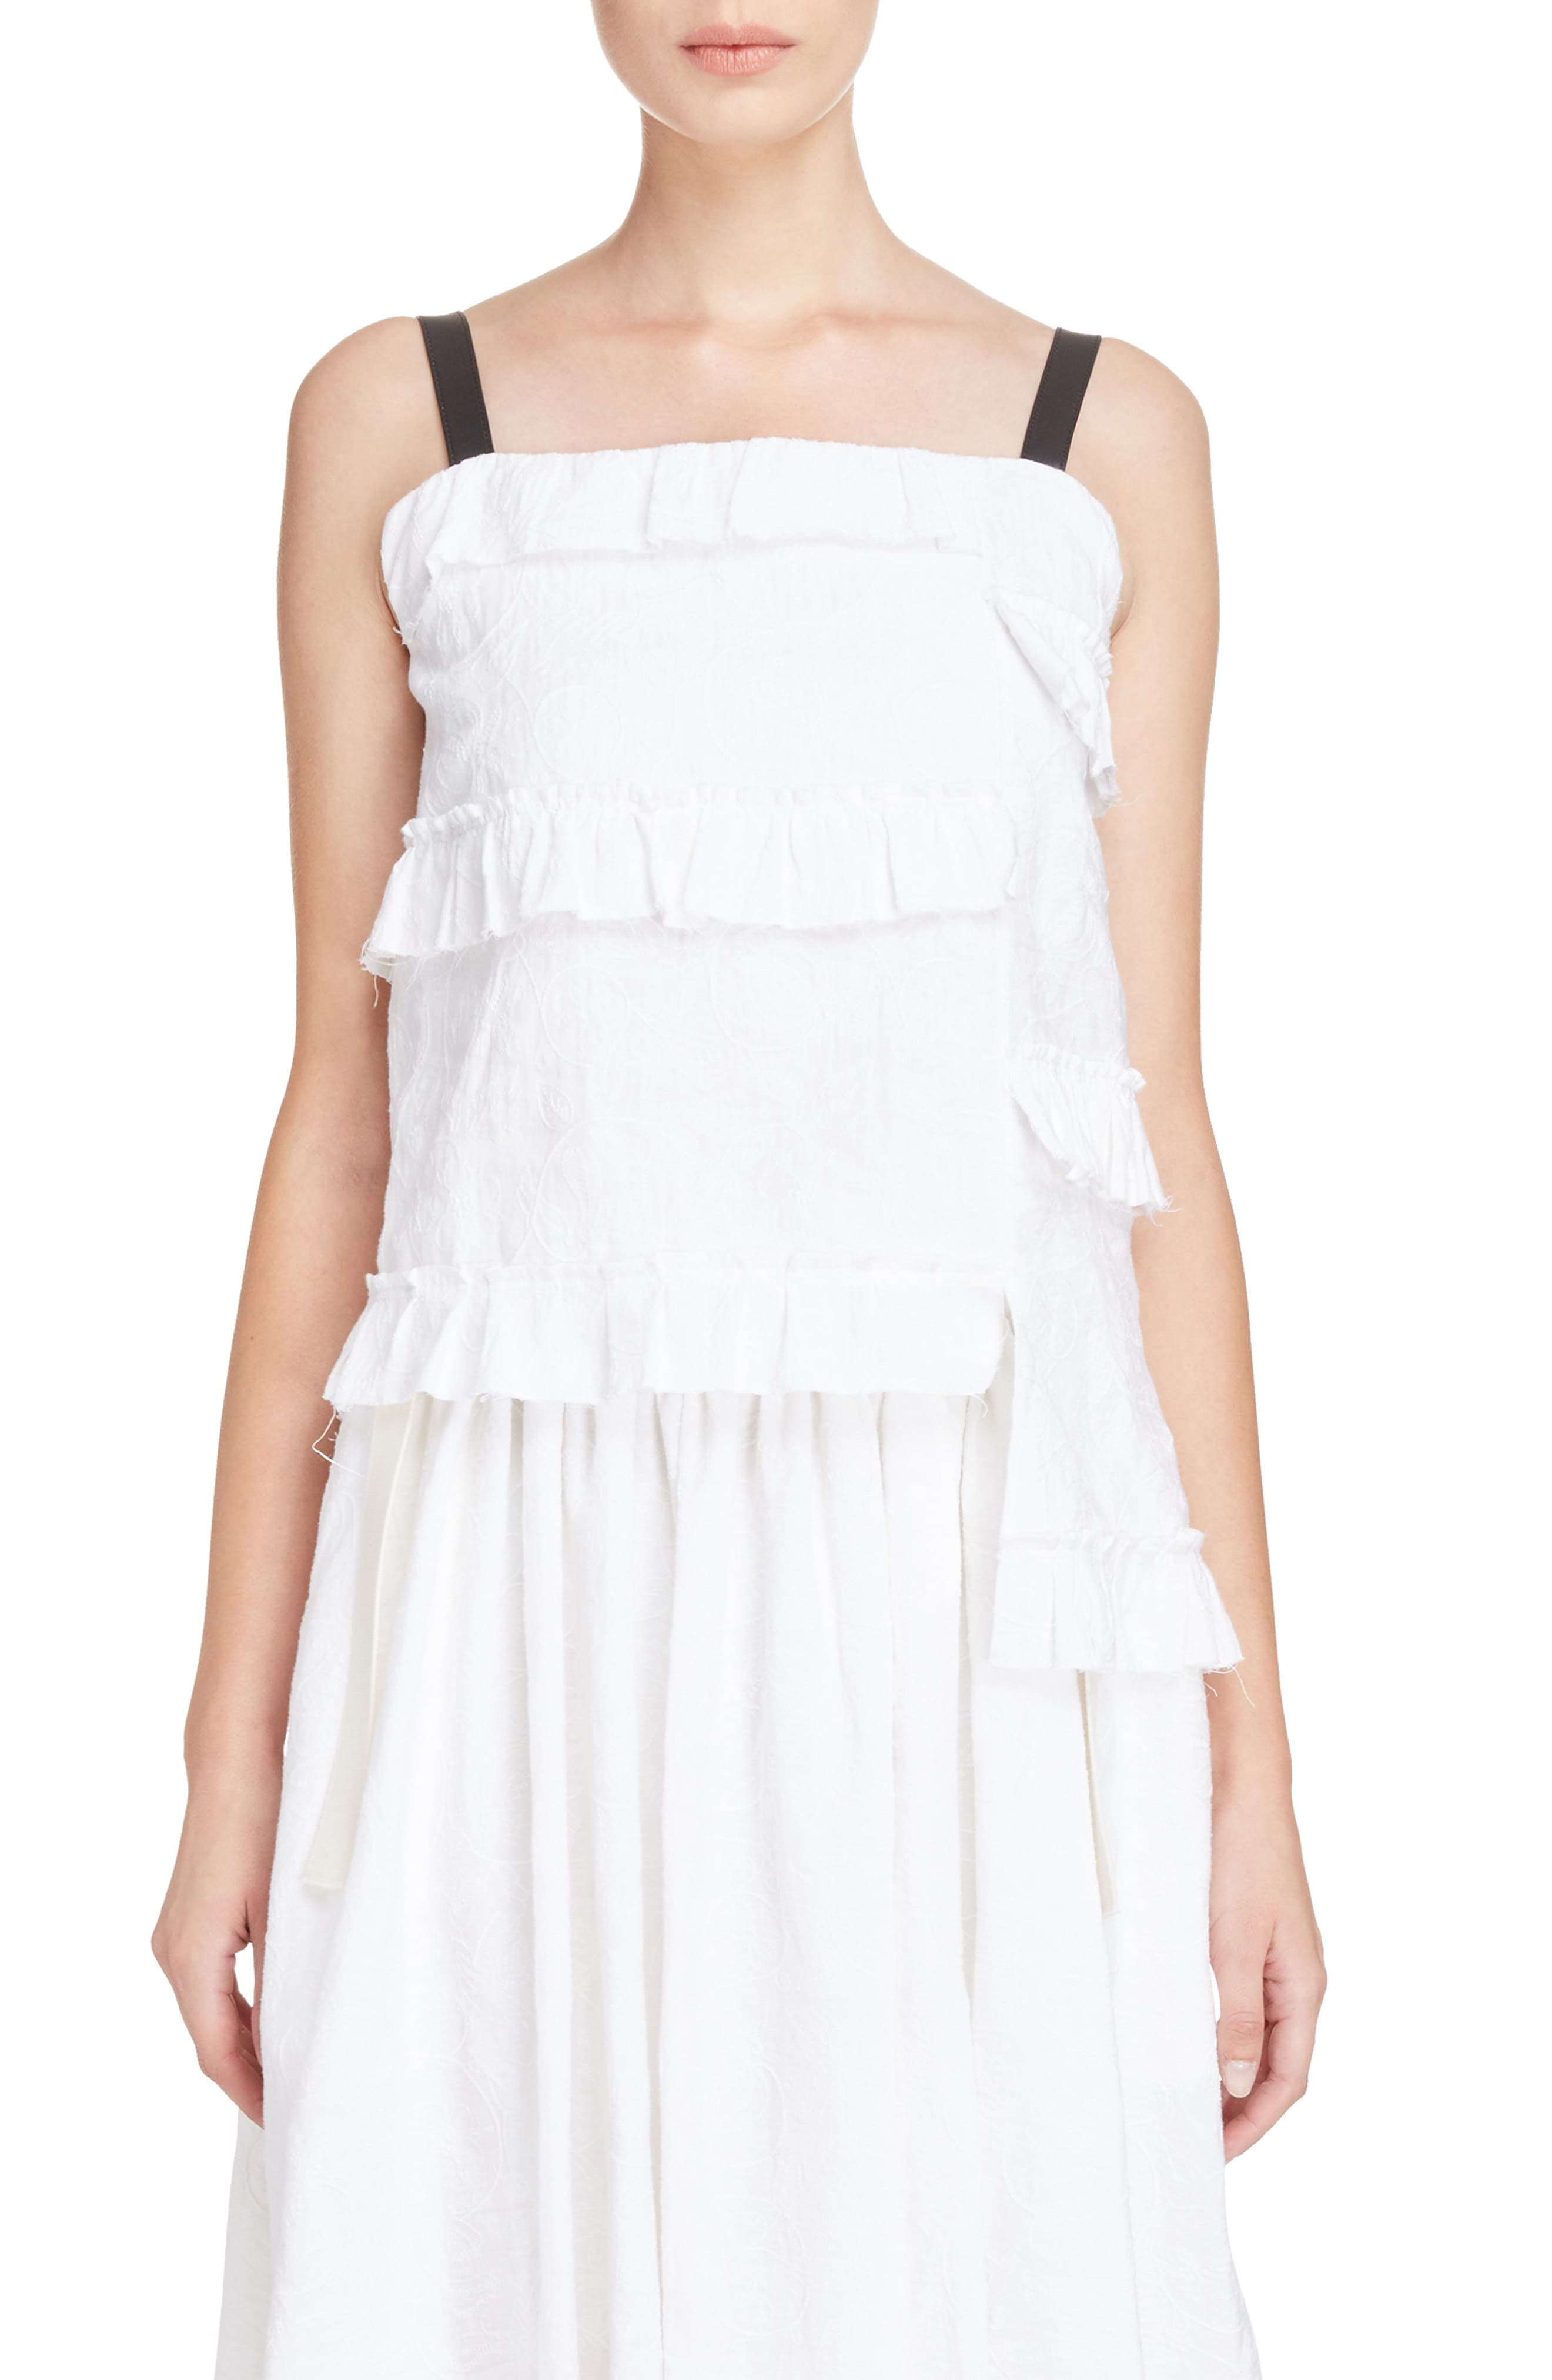 Alternate Image 1 Selected - Loewe Broderie Anglaise Ruffle Camisole